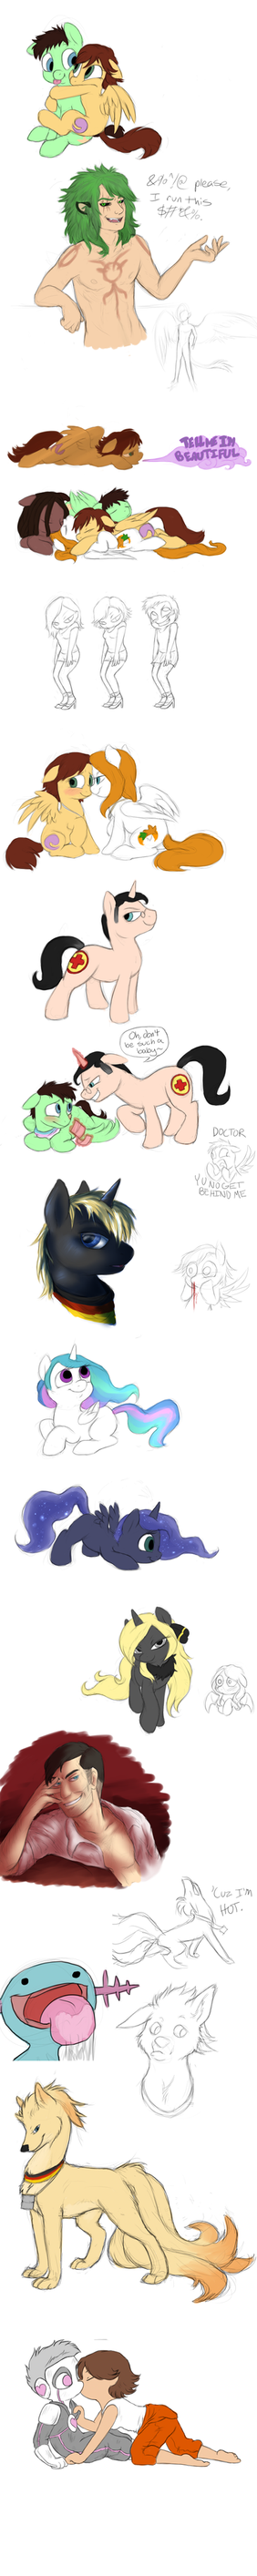 Livestream Doodles 24 by MelvisMD